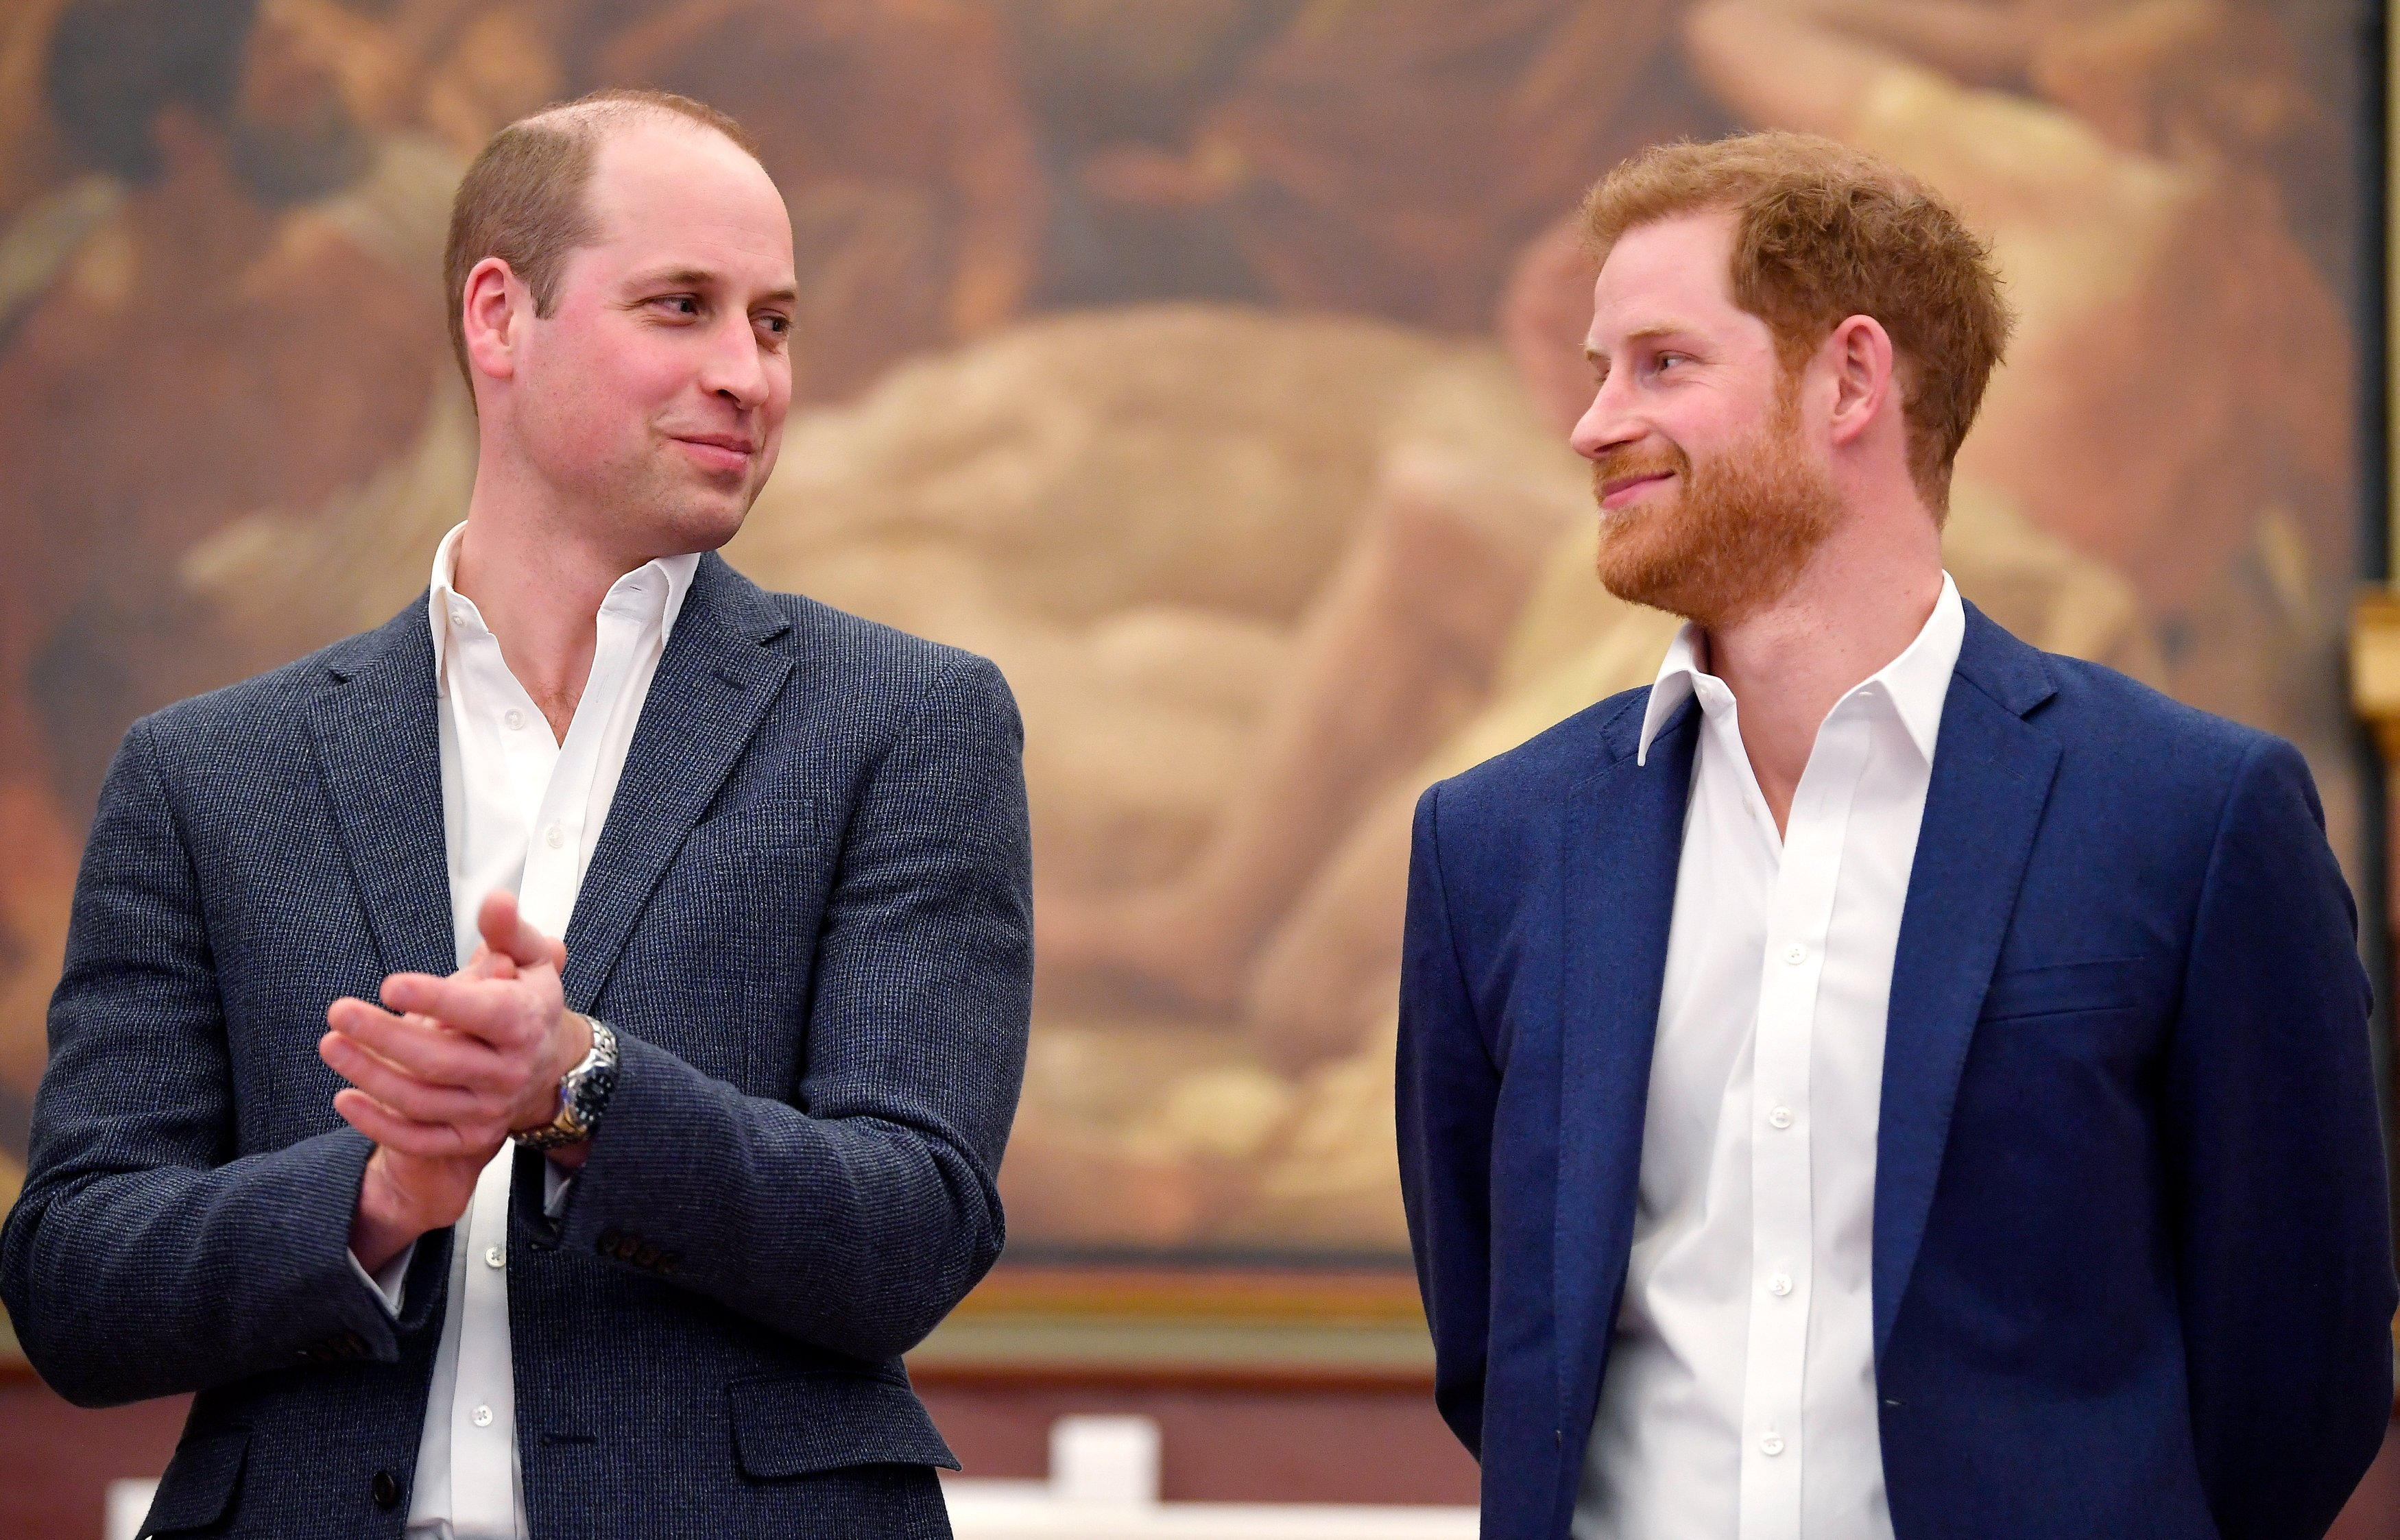 Le prince William, duc de Cambridge et le prince Harry assistent à l'ouverture du Greenhouse Sports Centre le 26 avril 2018 à Londres, au Royaume-Uni.  |  Photo : Getty Images.